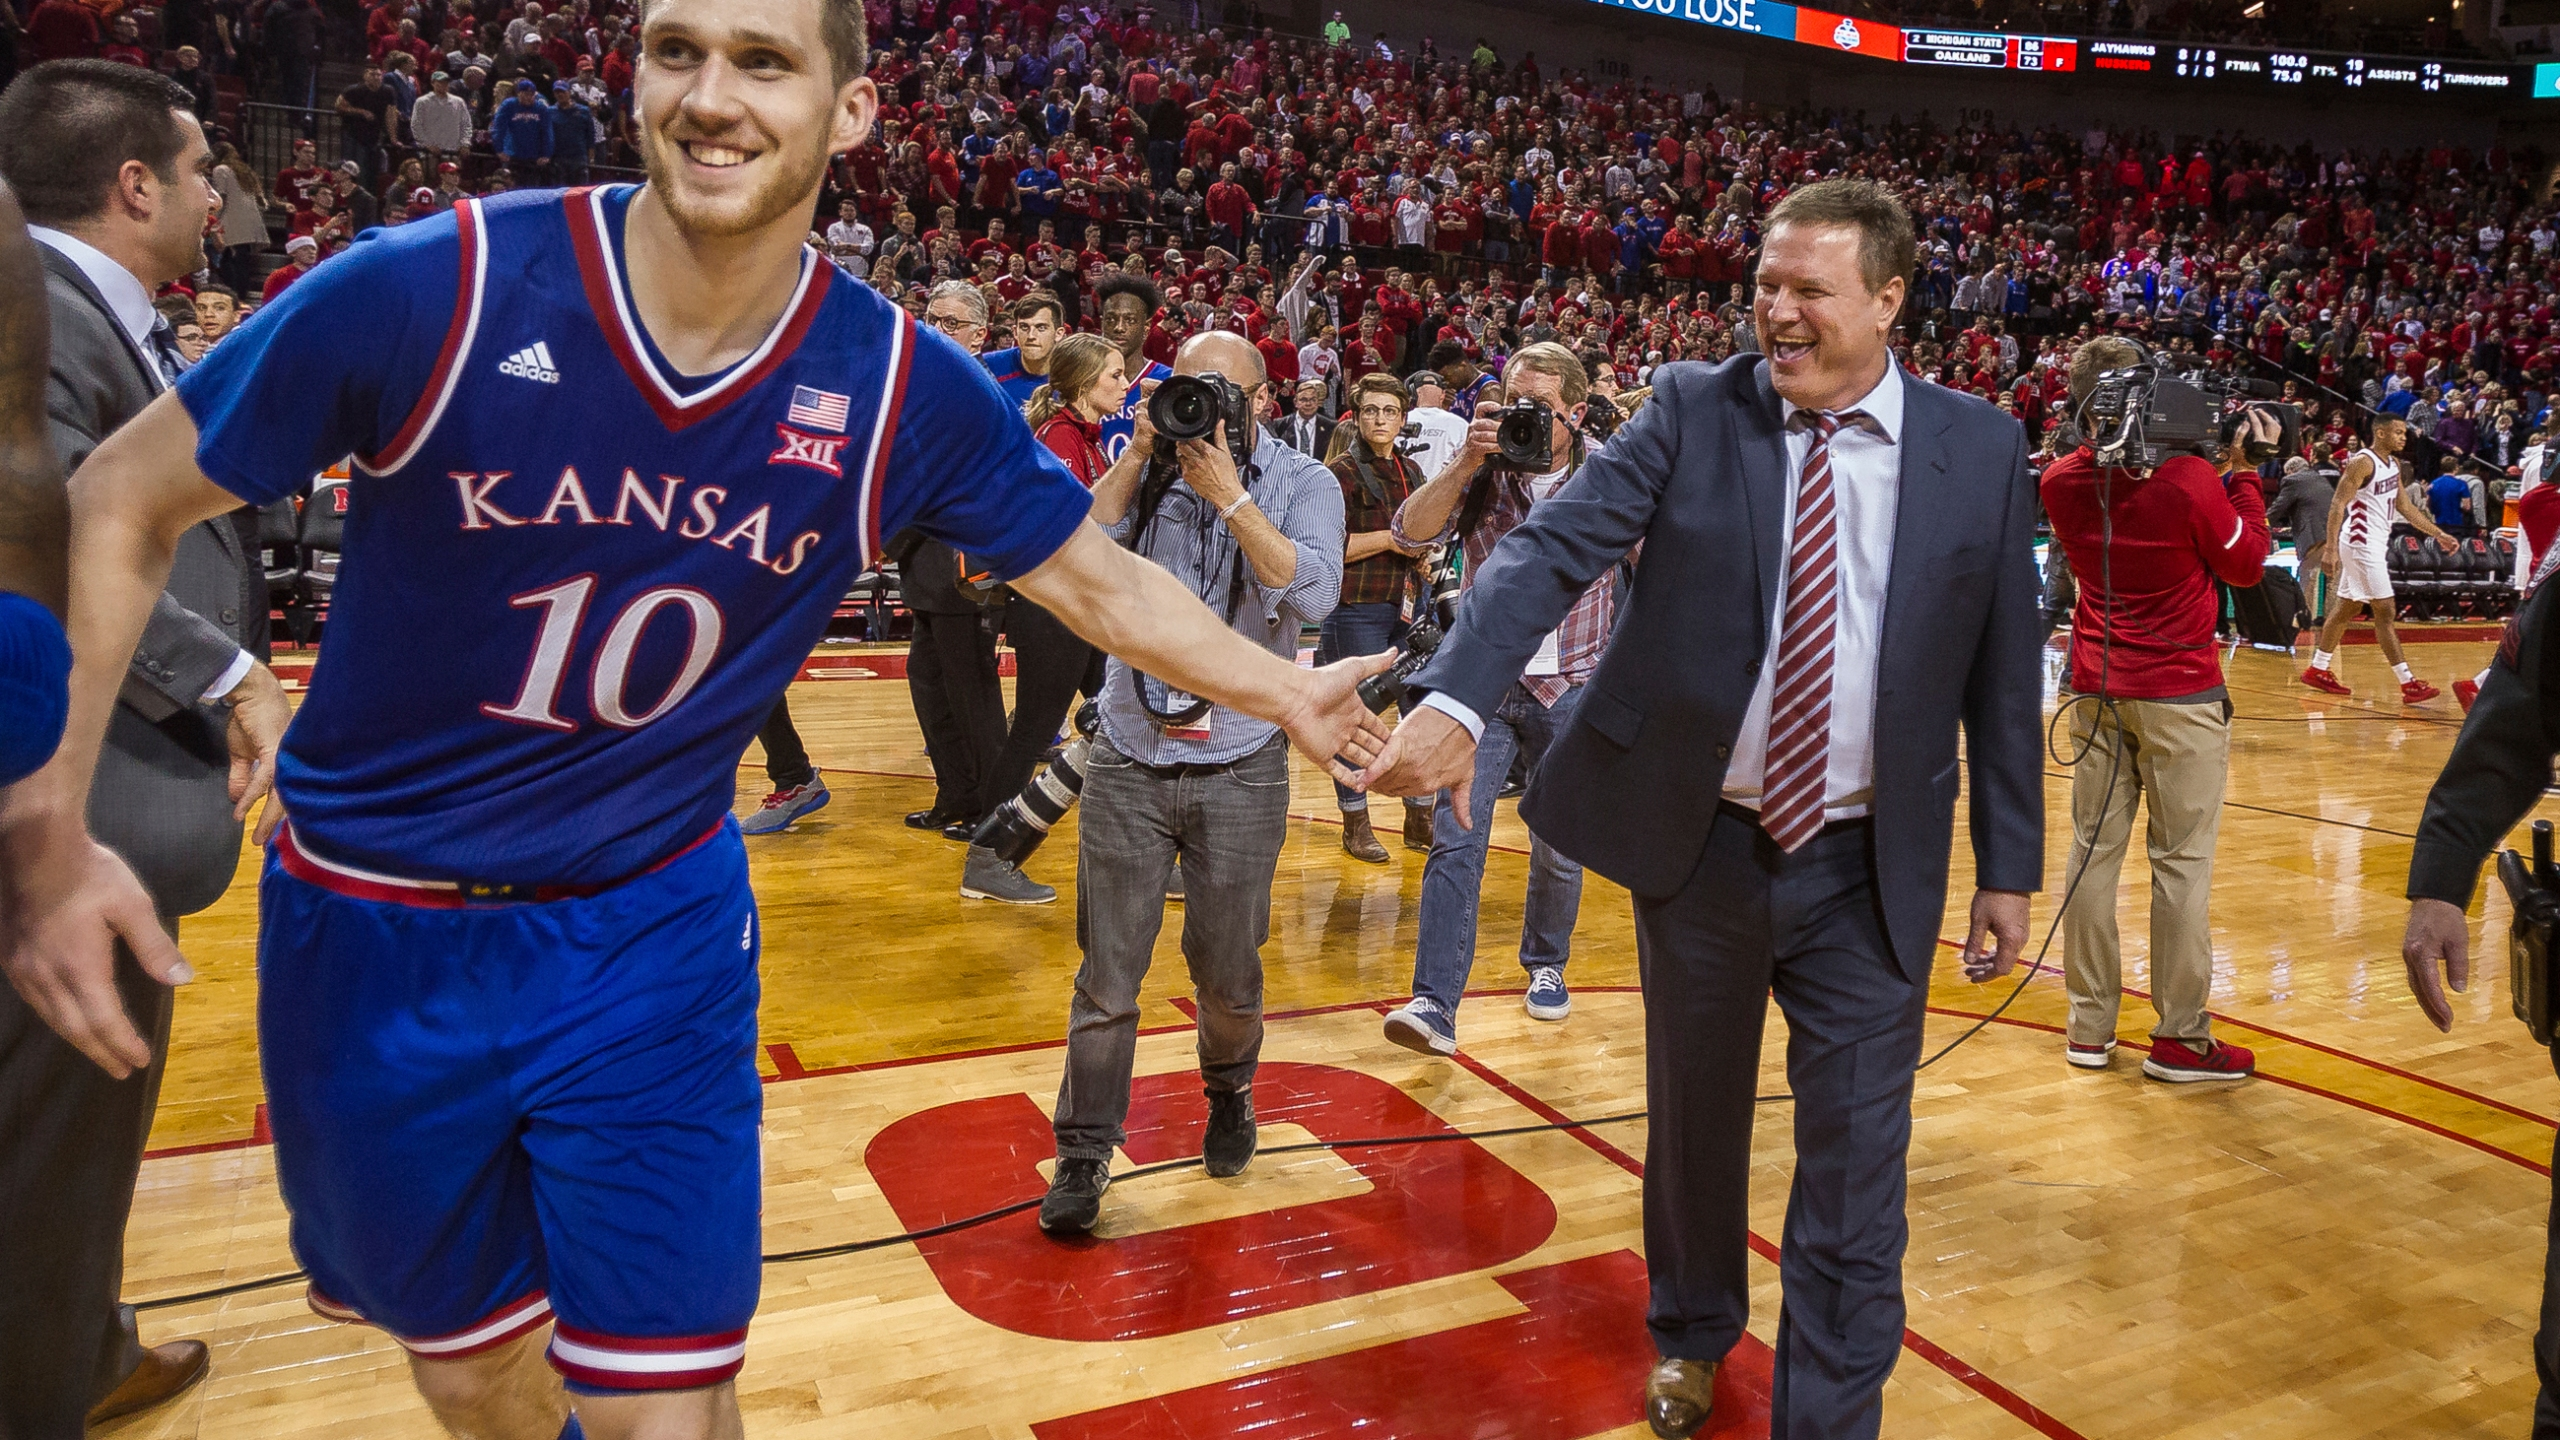 Bill Self, Sviatoslav Mykhailiuk_372232